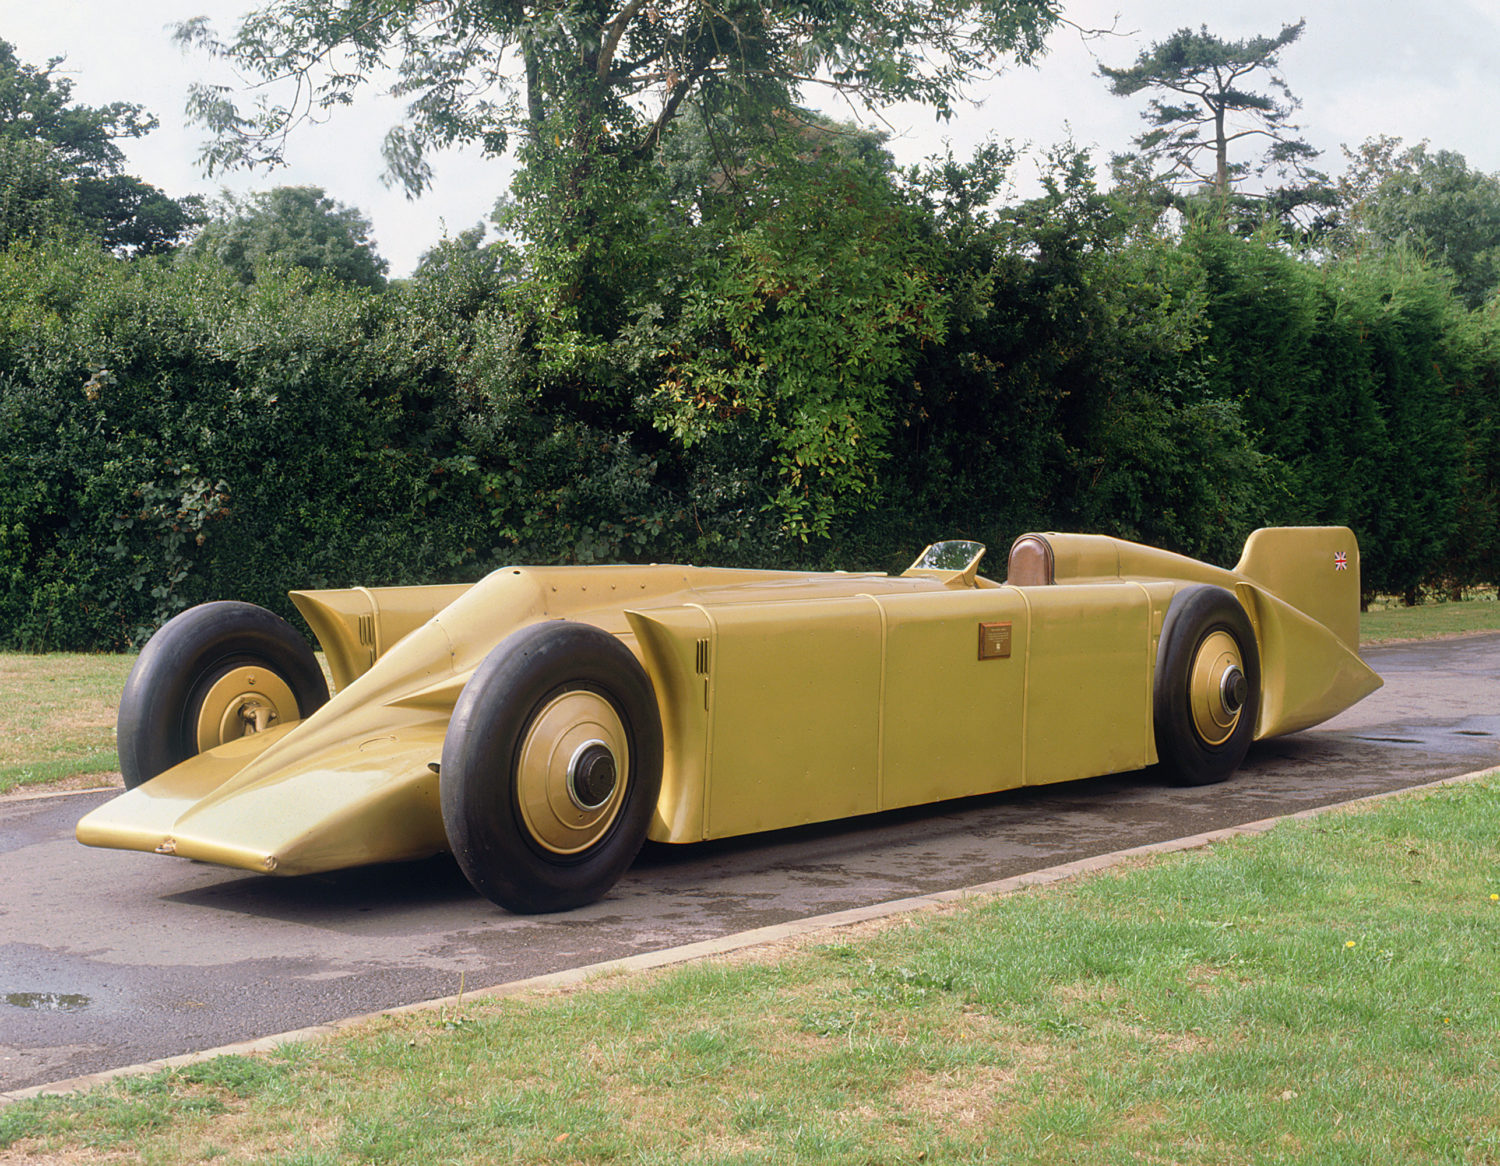 1929 Golden Arrow Land Speed Record car